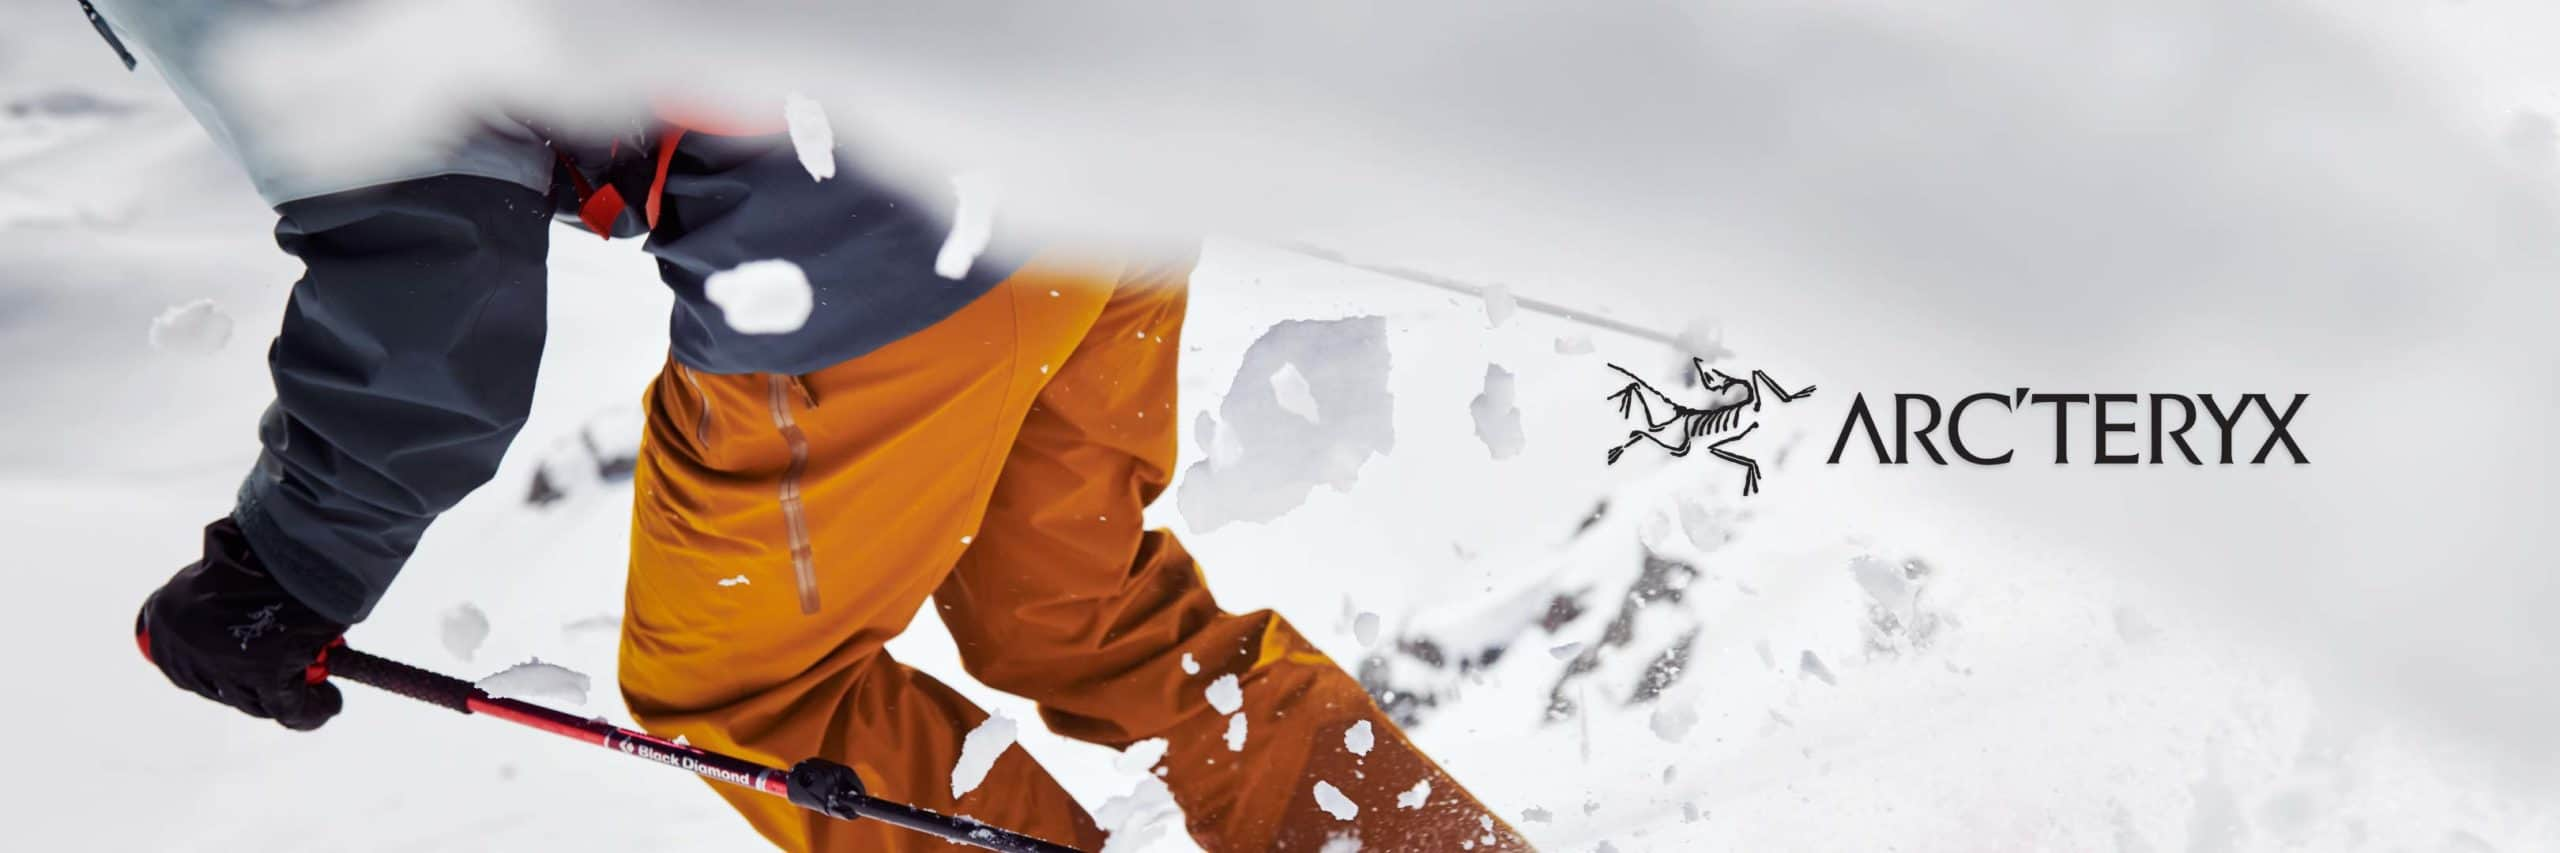 The Right Approach: Whistler Backcountry Skiing in Arc'teryx Whiteline Collection